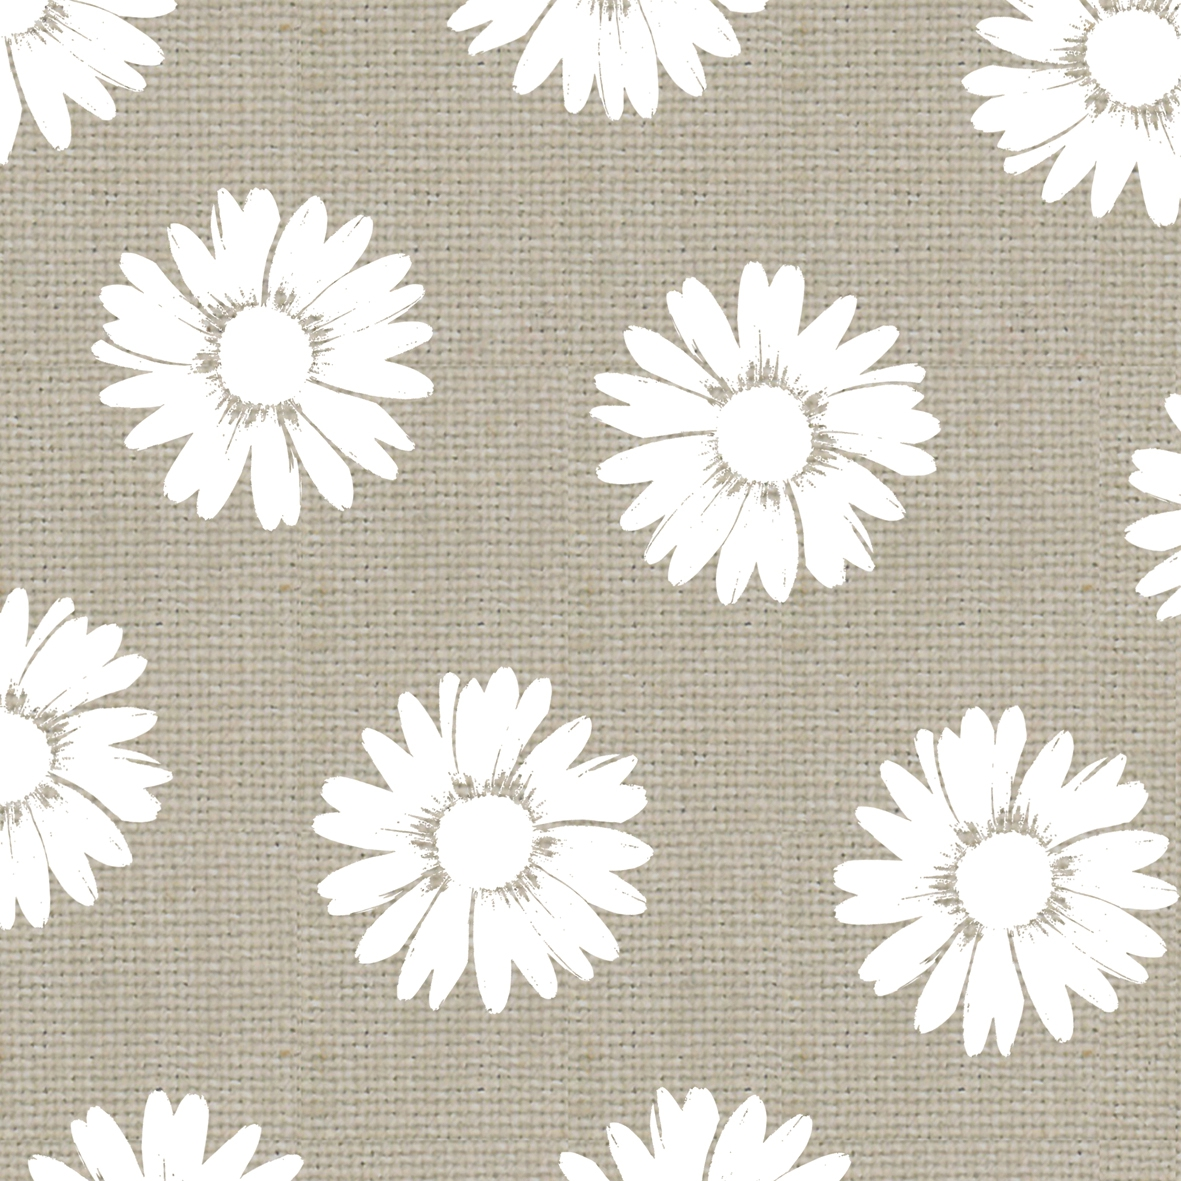 Lunch Servietten Fashion Daisies taupe white